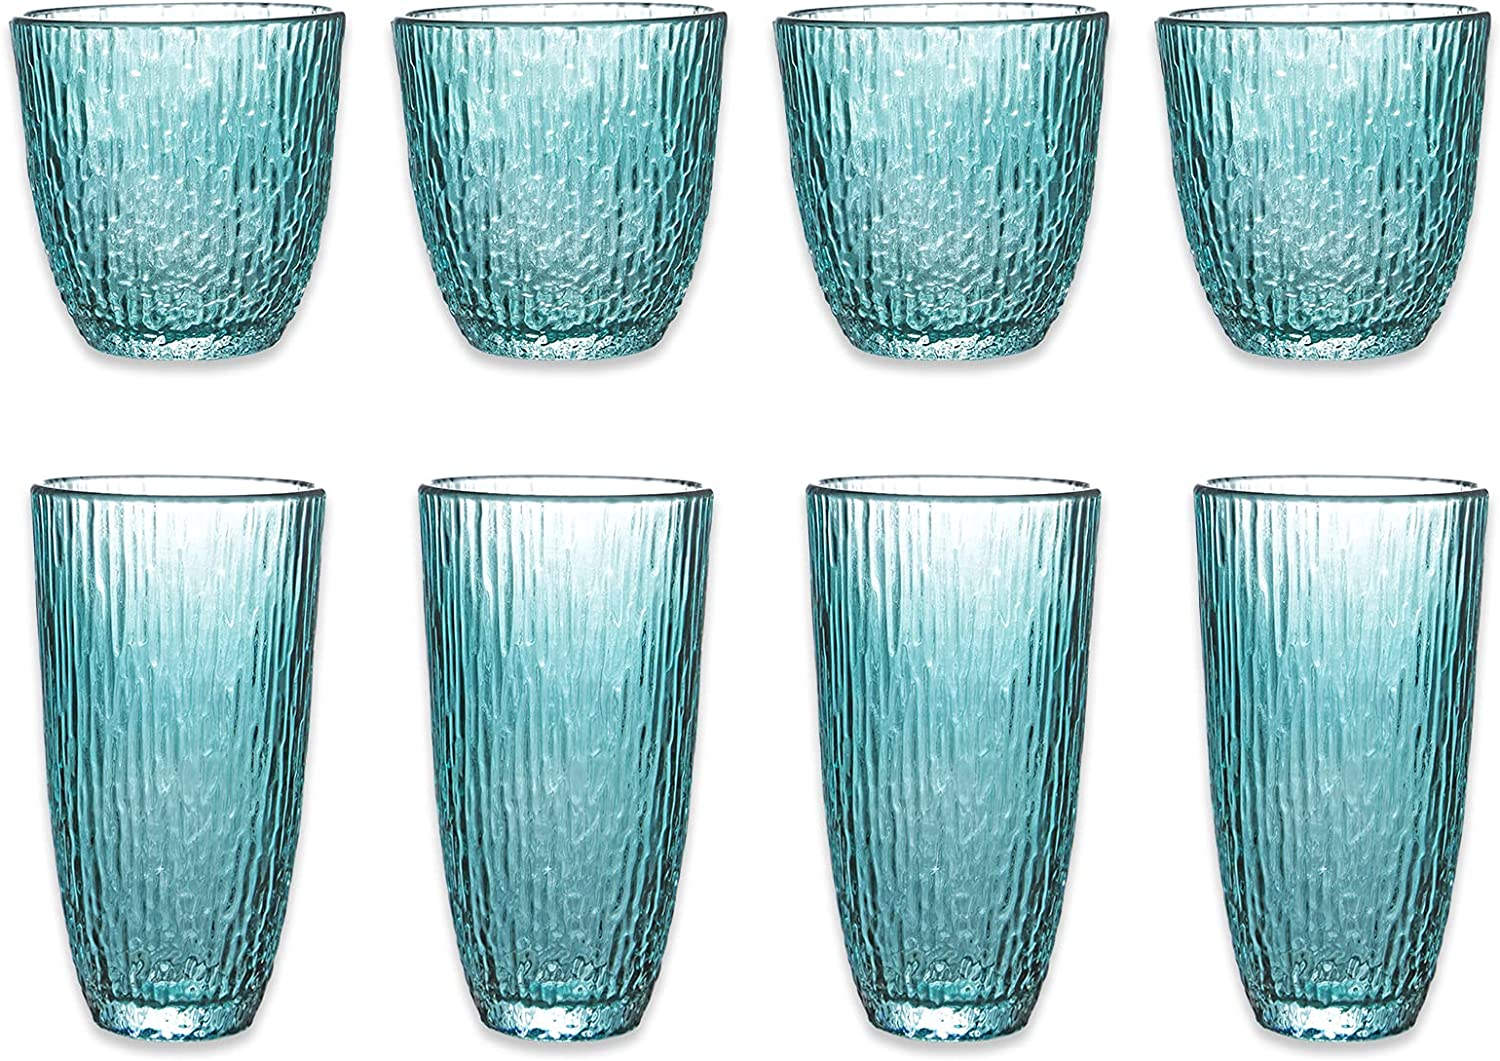 Amzcku Drinking Glasses Set of 8 | 4 Highball (12 oz.) And 4 Rocks Glass(10 oz.) | Glassware Kitchen family Lensed for Water, Beer,Wine,Milk,Juice and Cocktails.